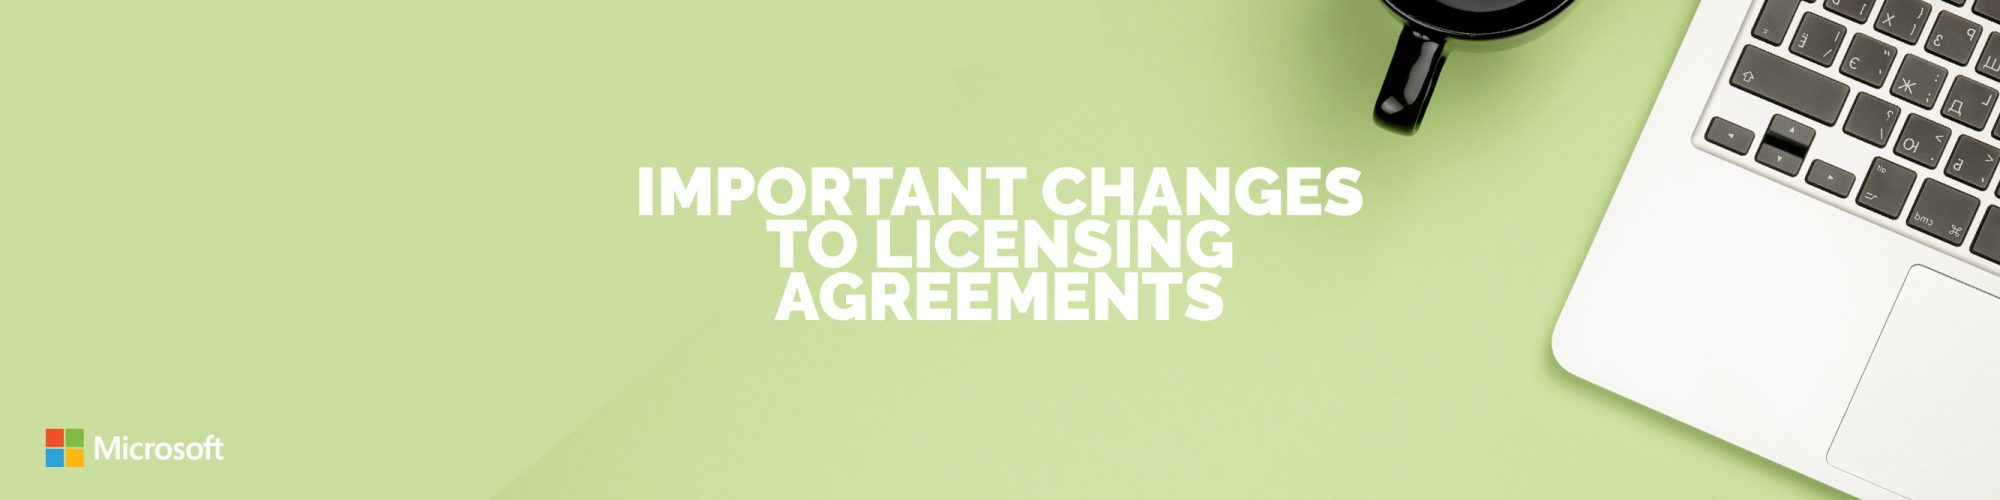 Microsoft Announcement –  Important changes to licensing agreements